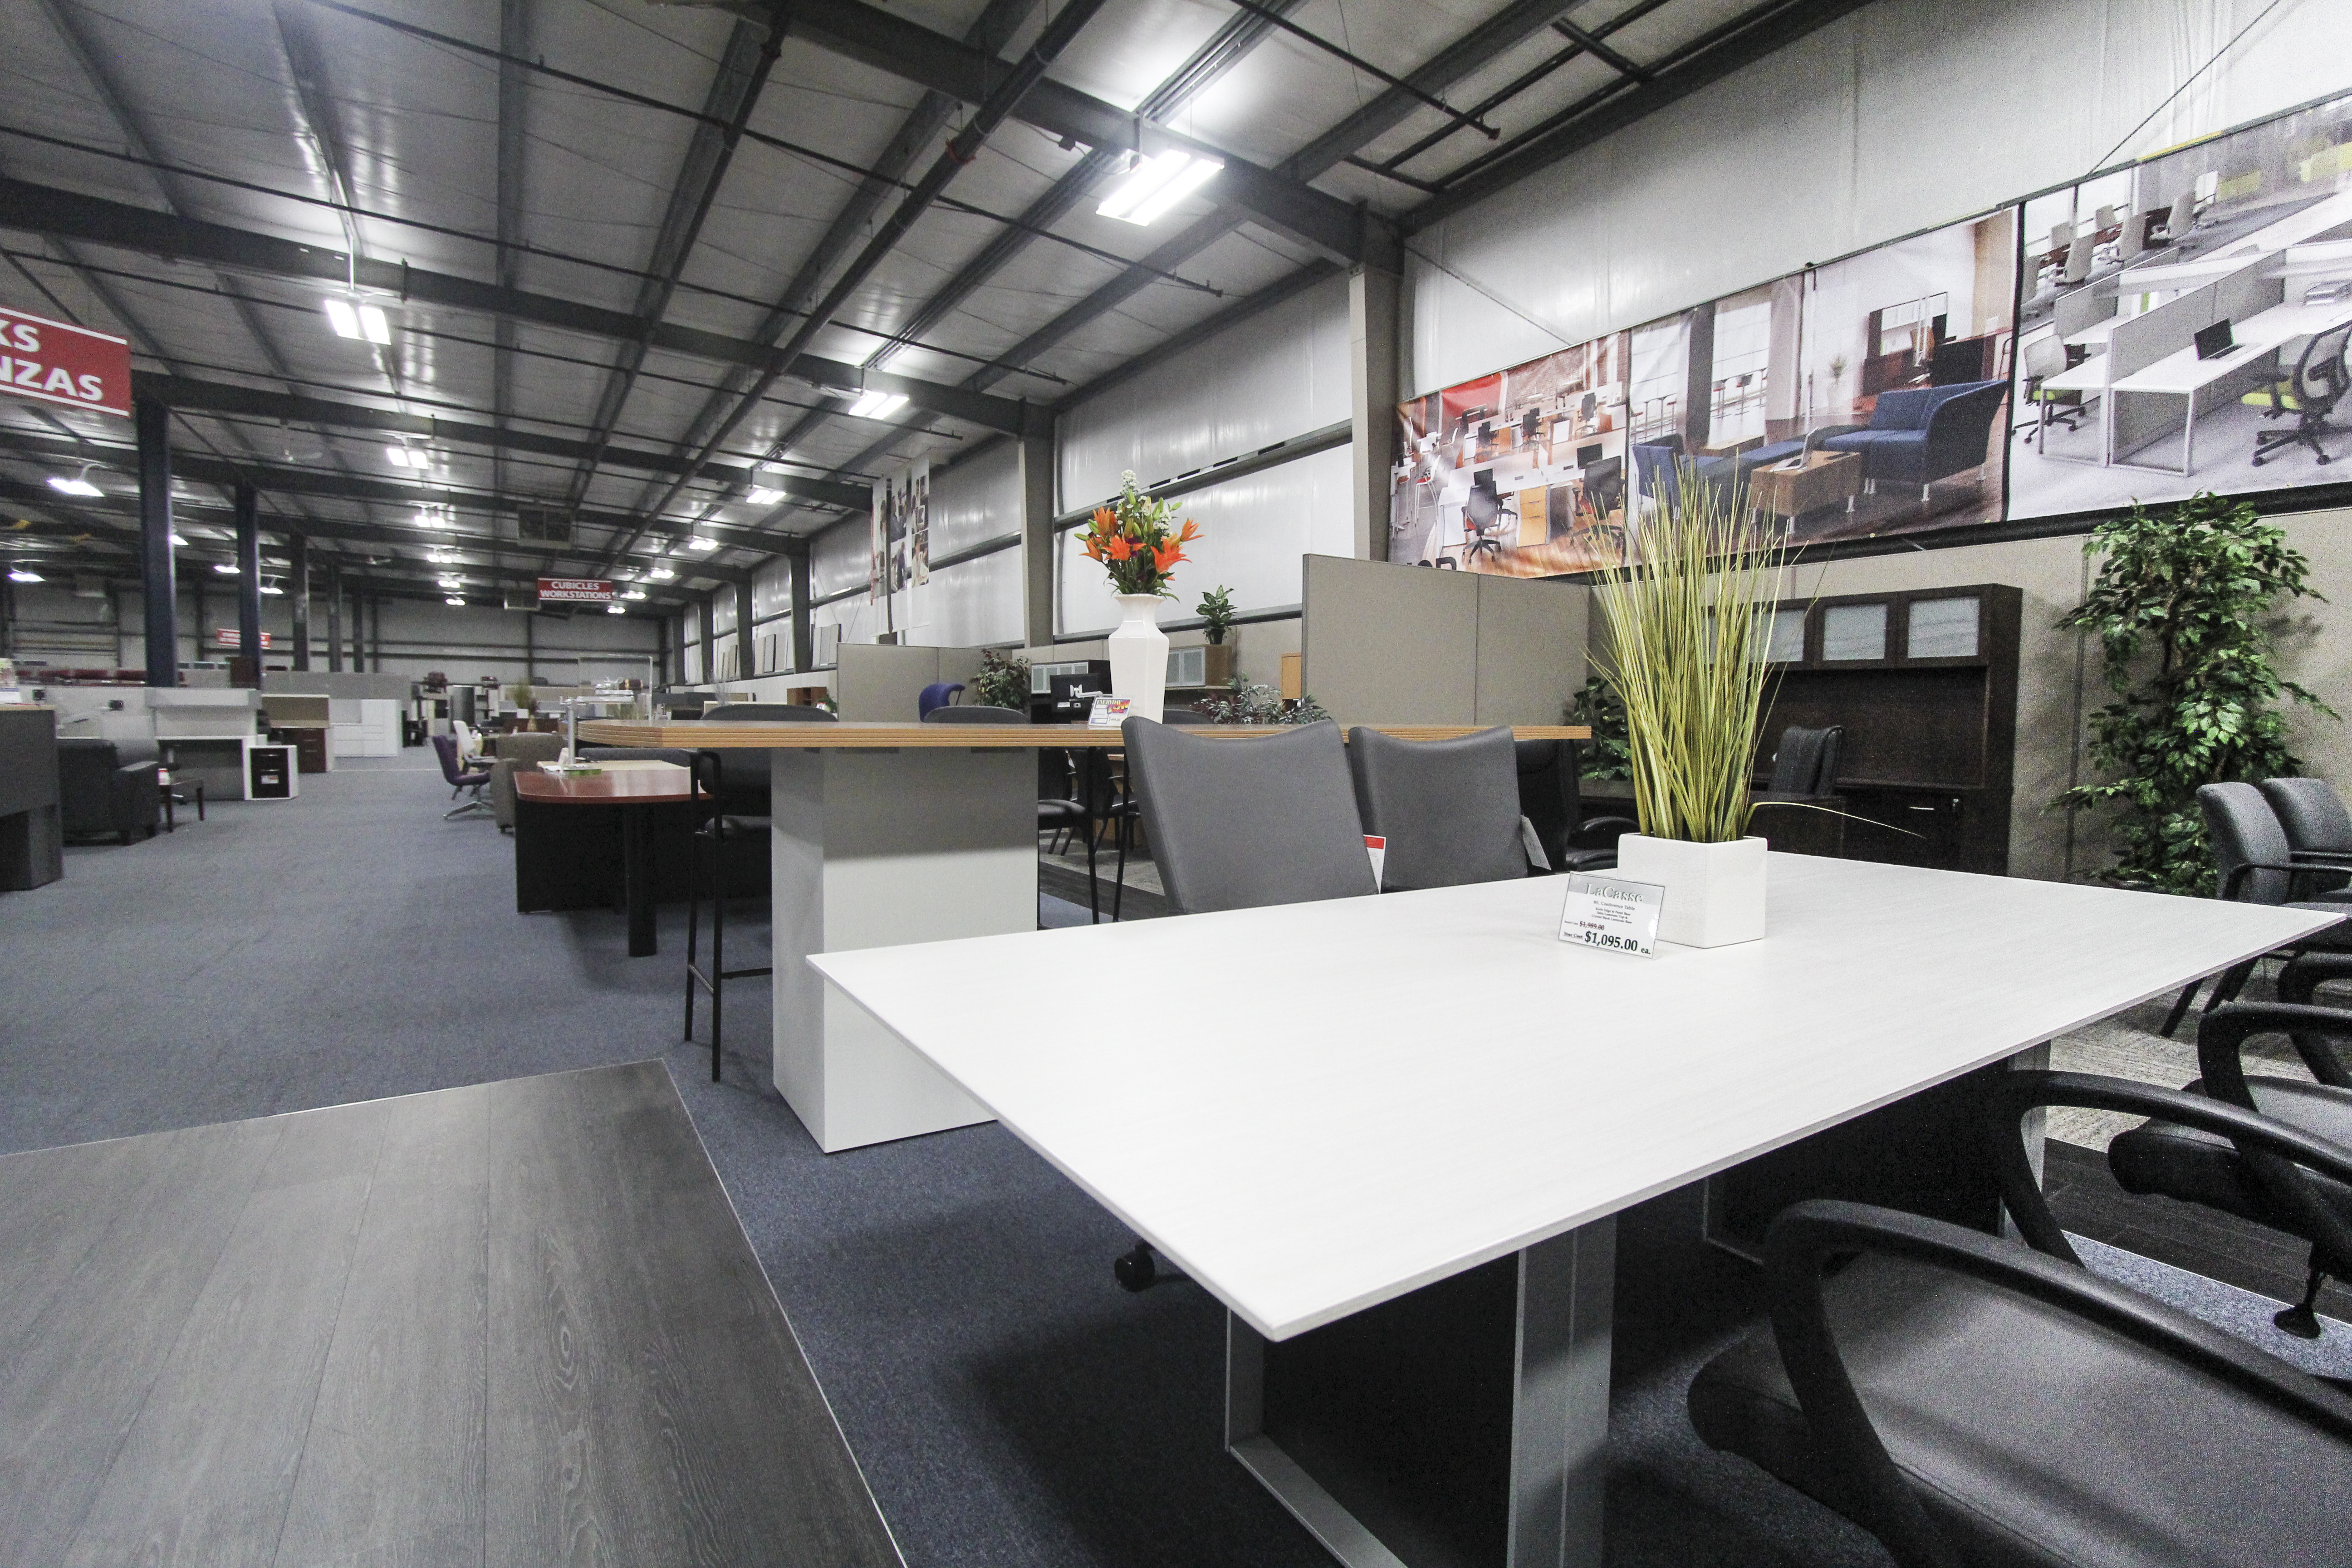 Make Your Office E As Unique Company Is With A Little Updating From Villa Park Equipment Inc